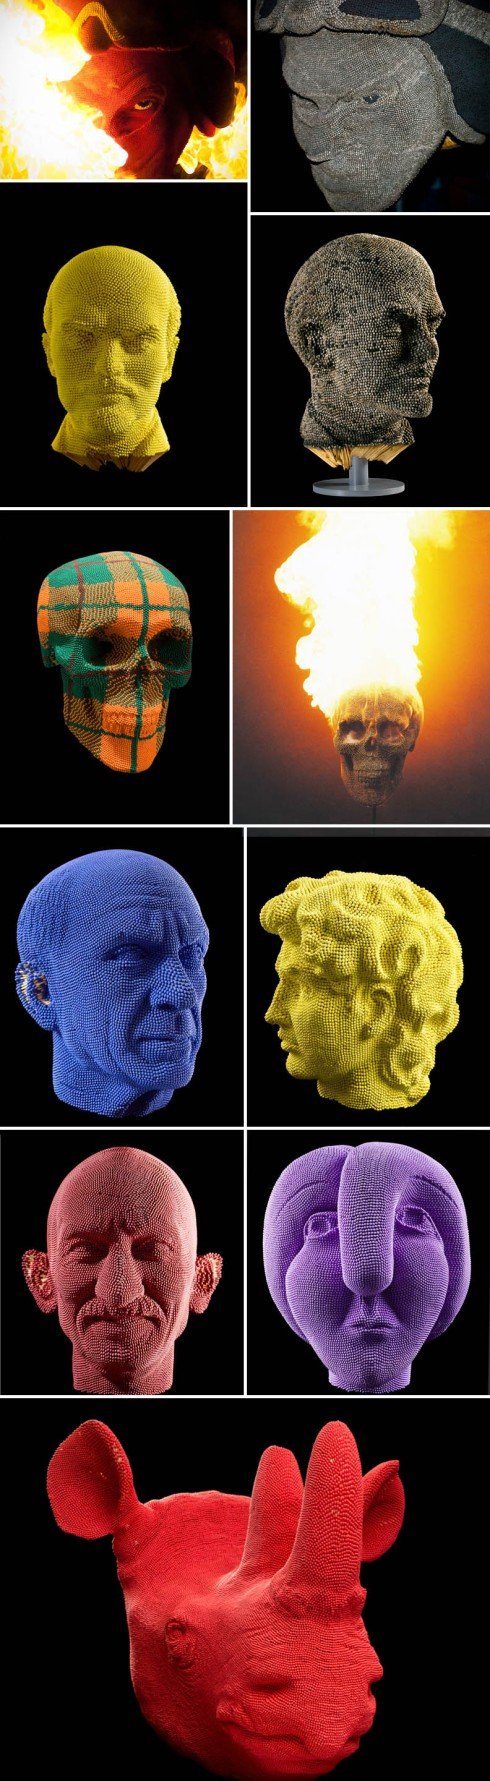 sculptures made of matches, sculptures that are lit and burned, heads made up of matches